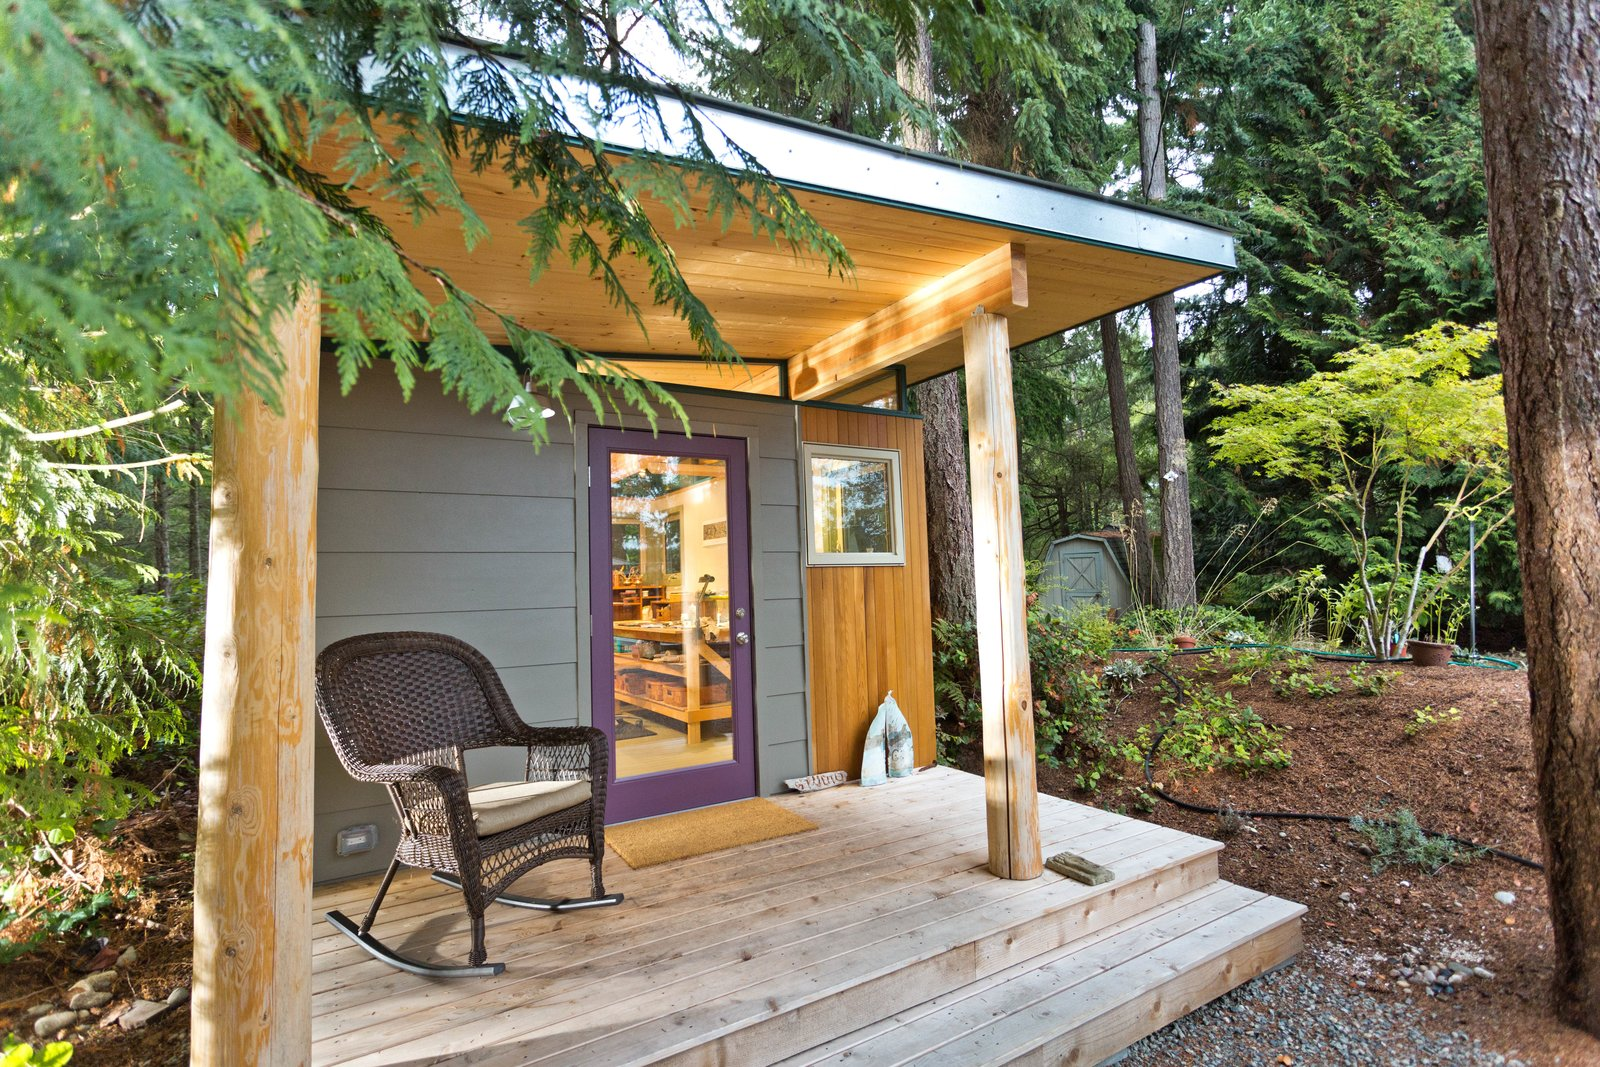 Photo 8 of 8 in 8 Inspirational Island Prefabs from Modern-Shed | Sacred Studio